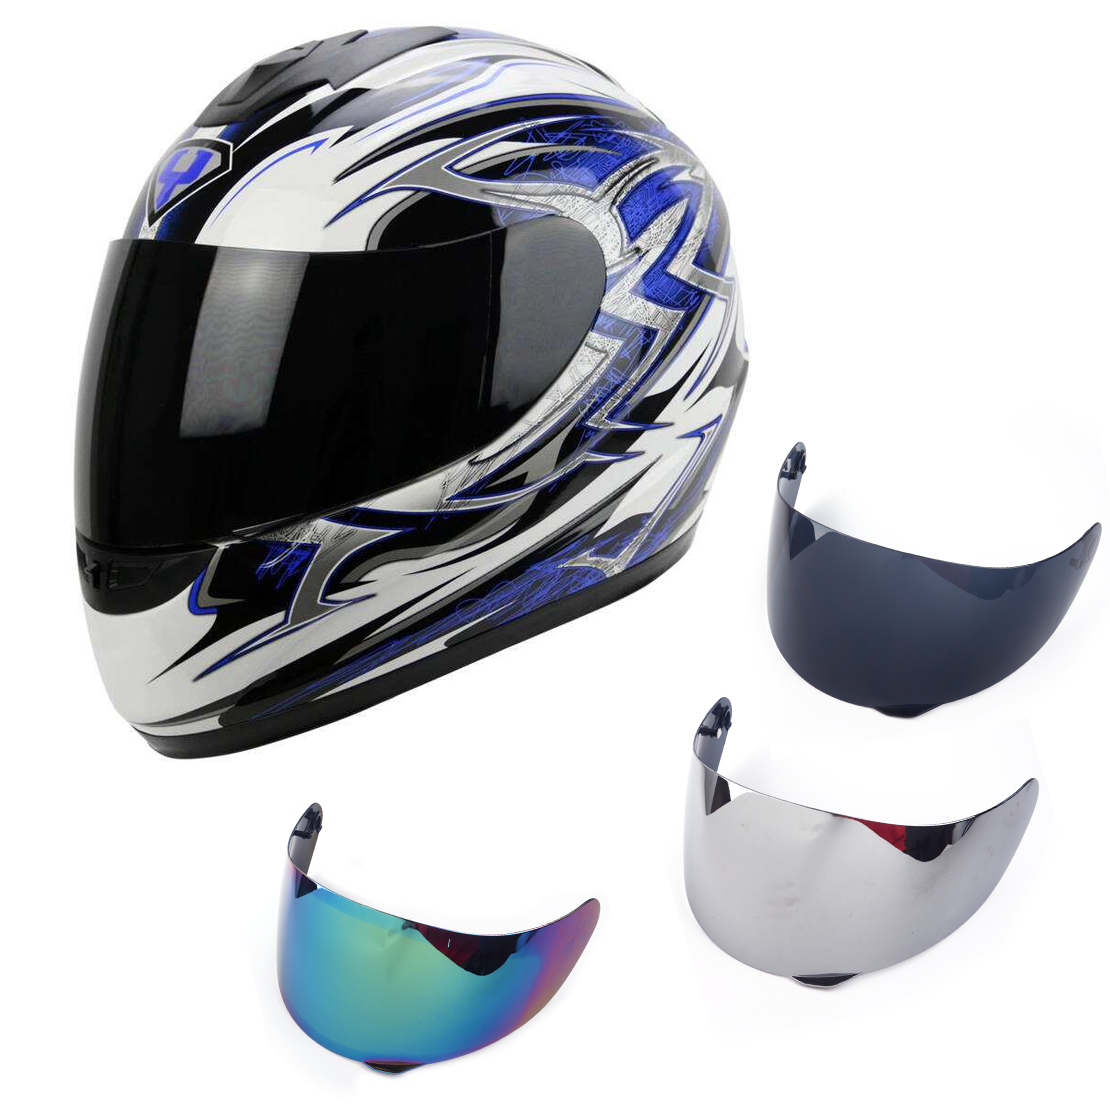 Motorcycle Helmet Visor Replacement Full Face Motorcycle Helmet Visor For Agv K3 K4 Helmets Lens Shield Protective Gear Motorcycle Atv